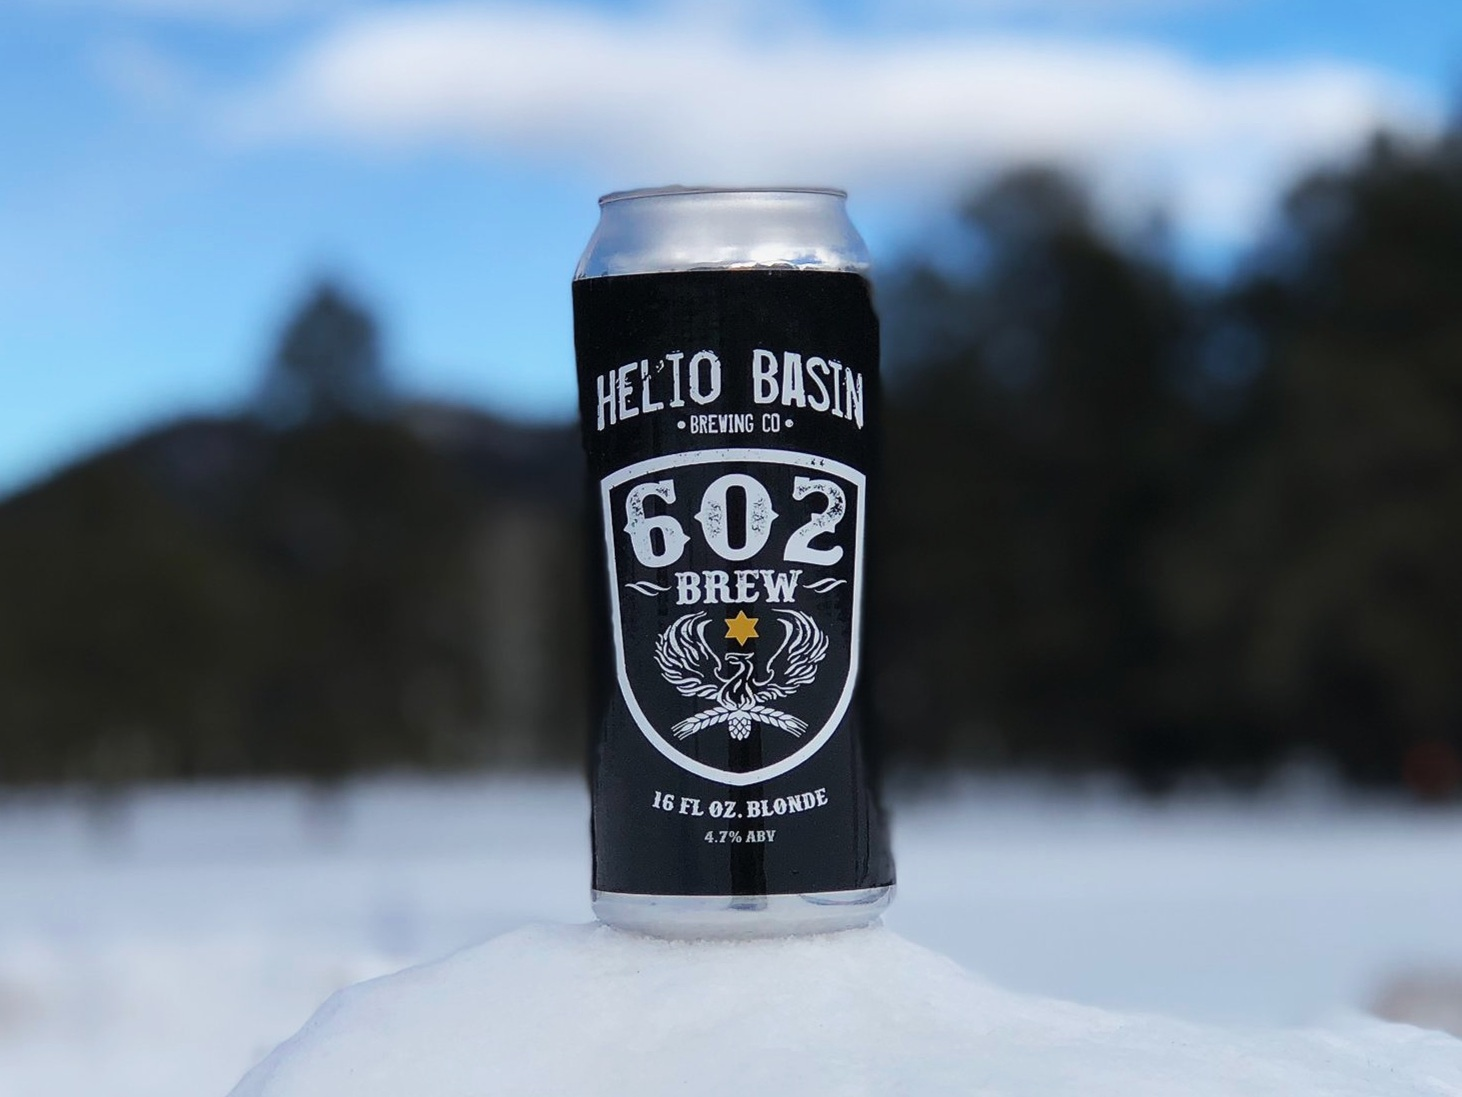 602 Brew Blonde#156 - Ranked the #156 best beer in the world